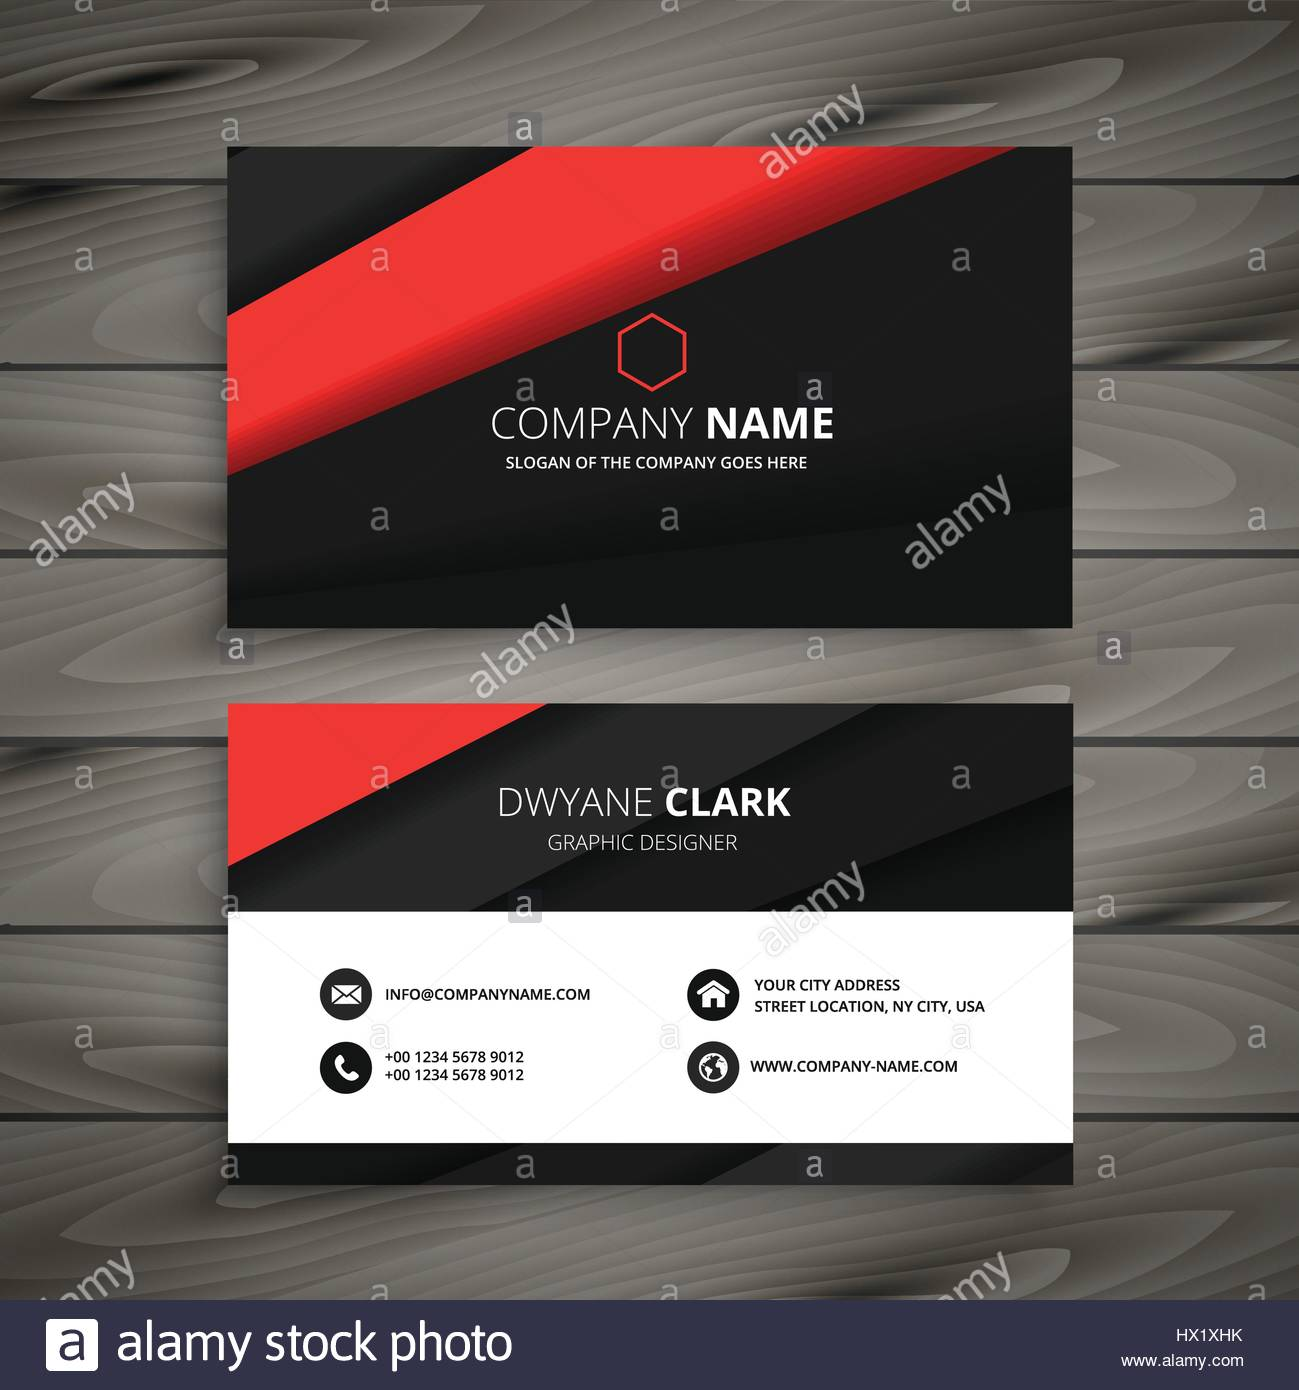 minimal red black business card template vector design ...